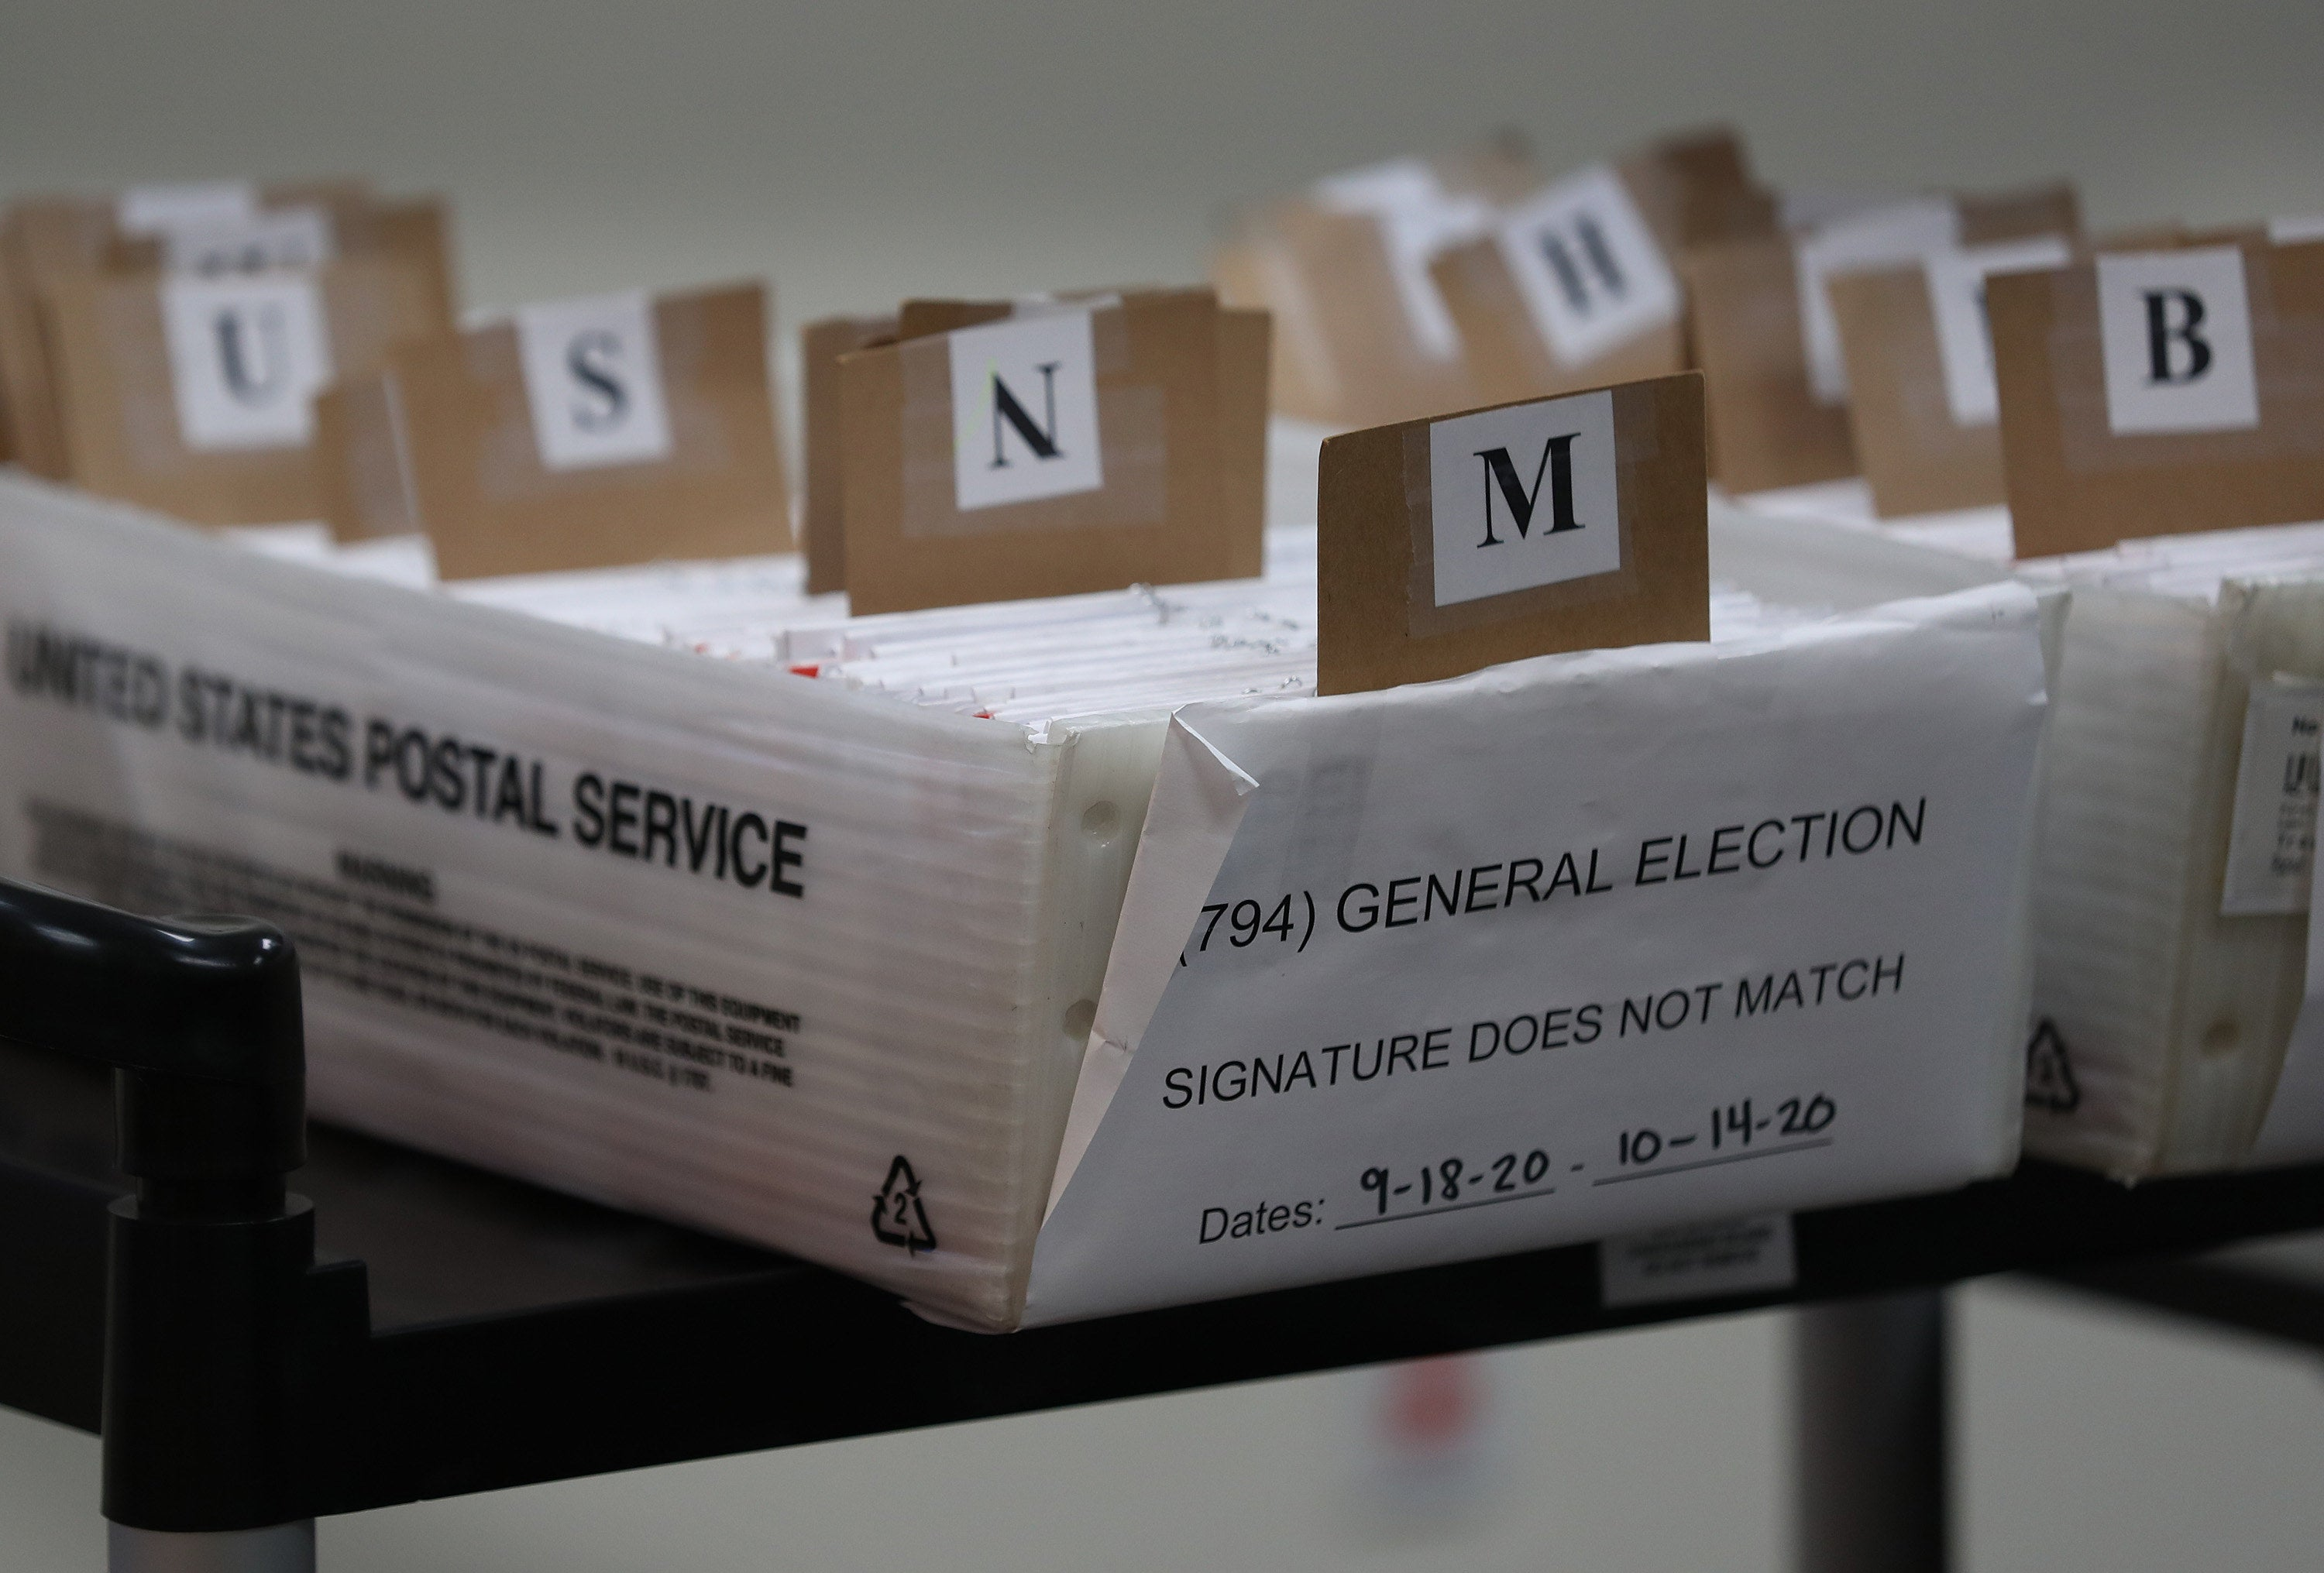 Alabama's Most Populous County Says It Has A Plan For Voters Who Received Instructions That Would Invalidate Their Ballots